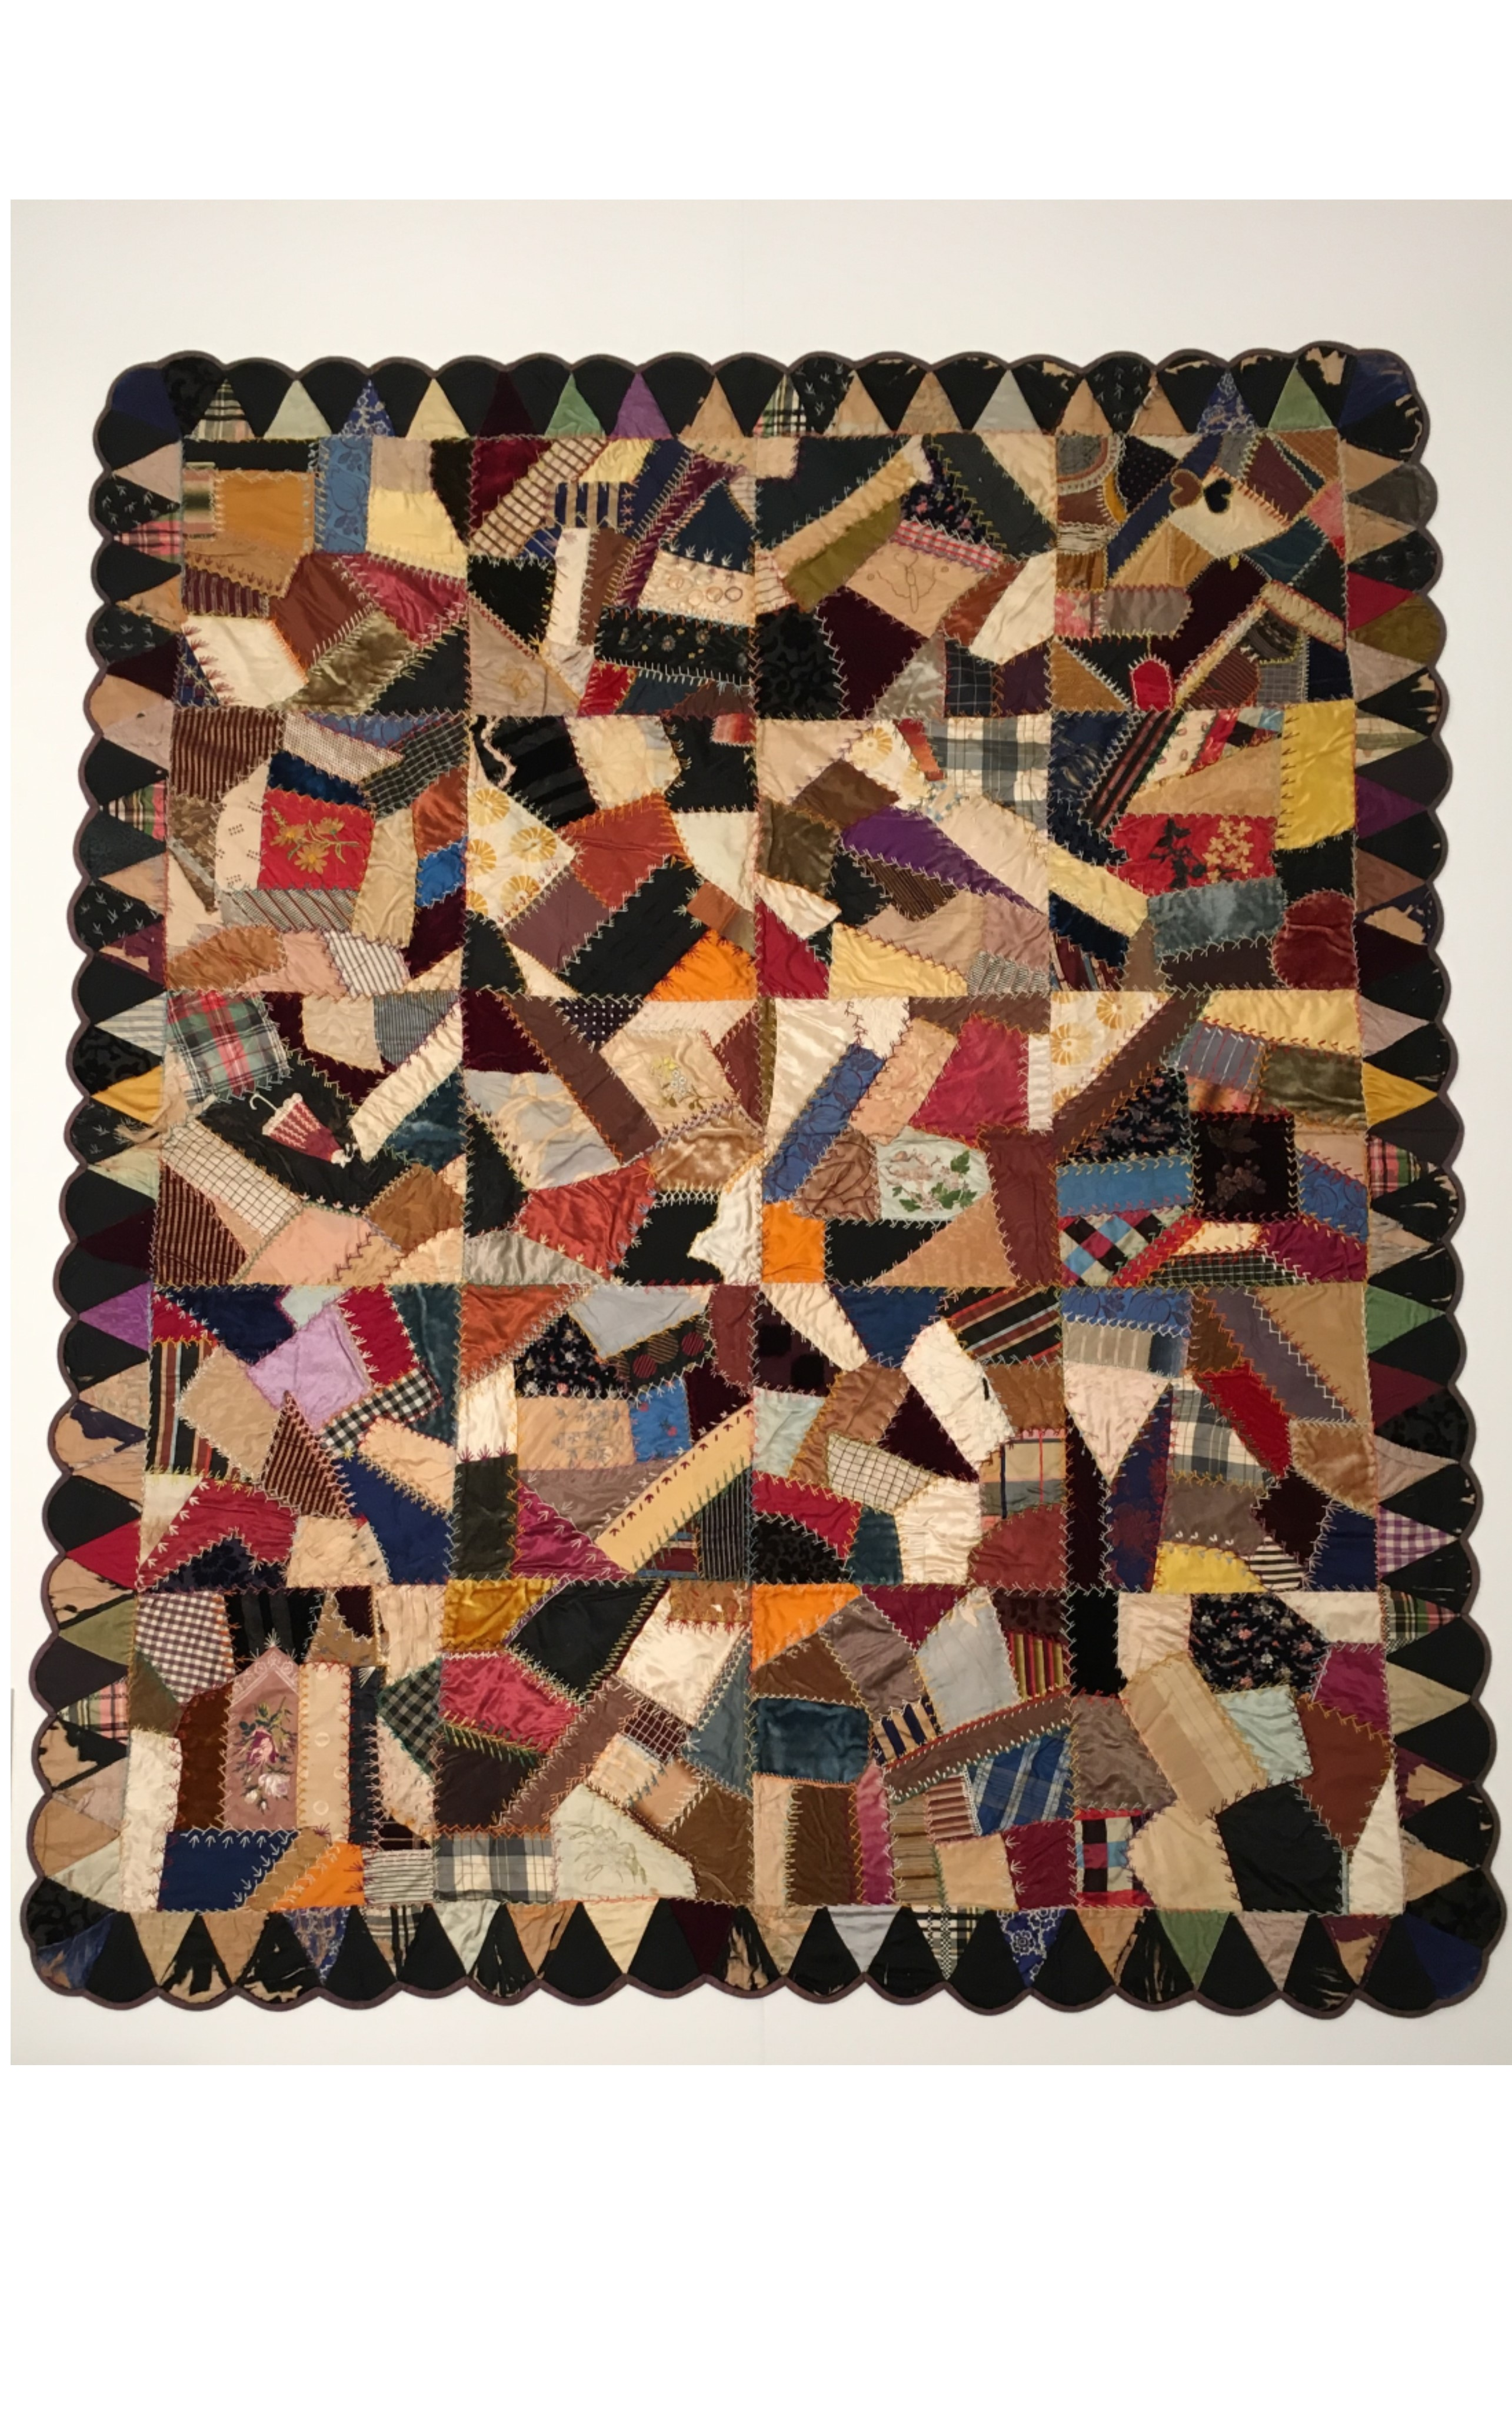 <h3>CRAZY QUILT</h3>